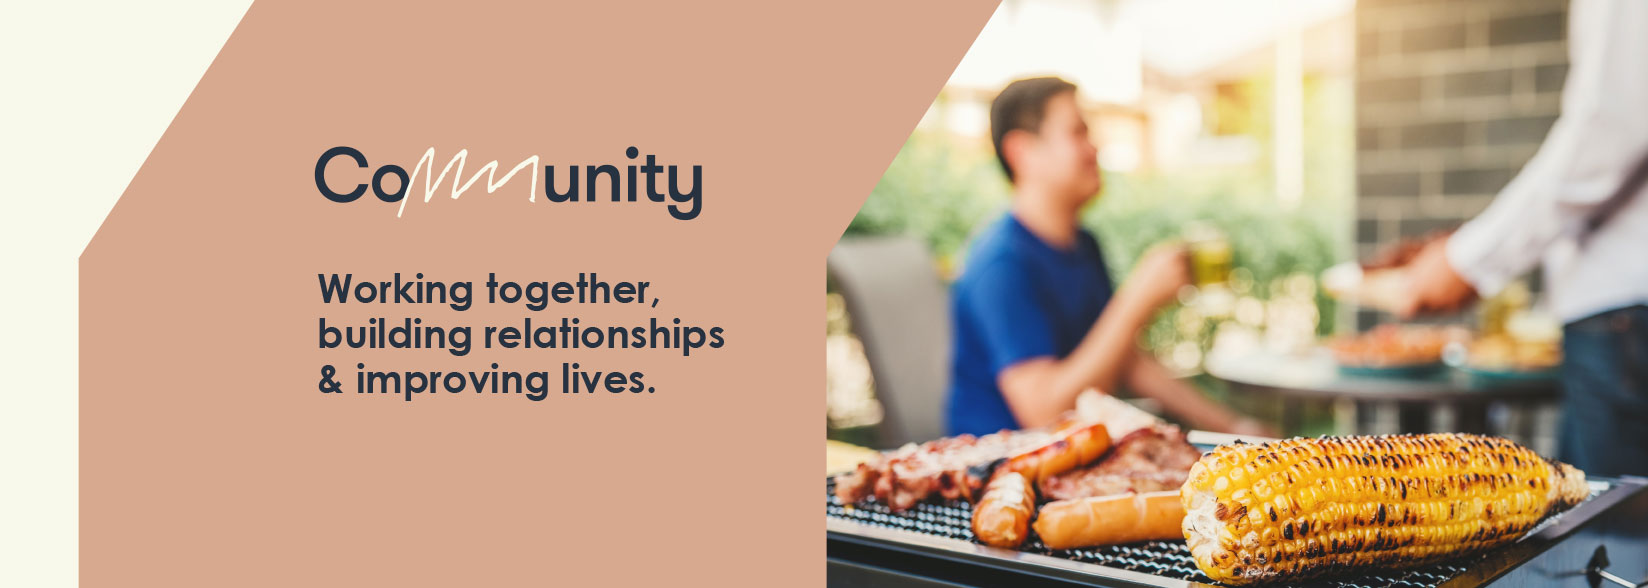 Community: Working together, building relationships & improving lives.